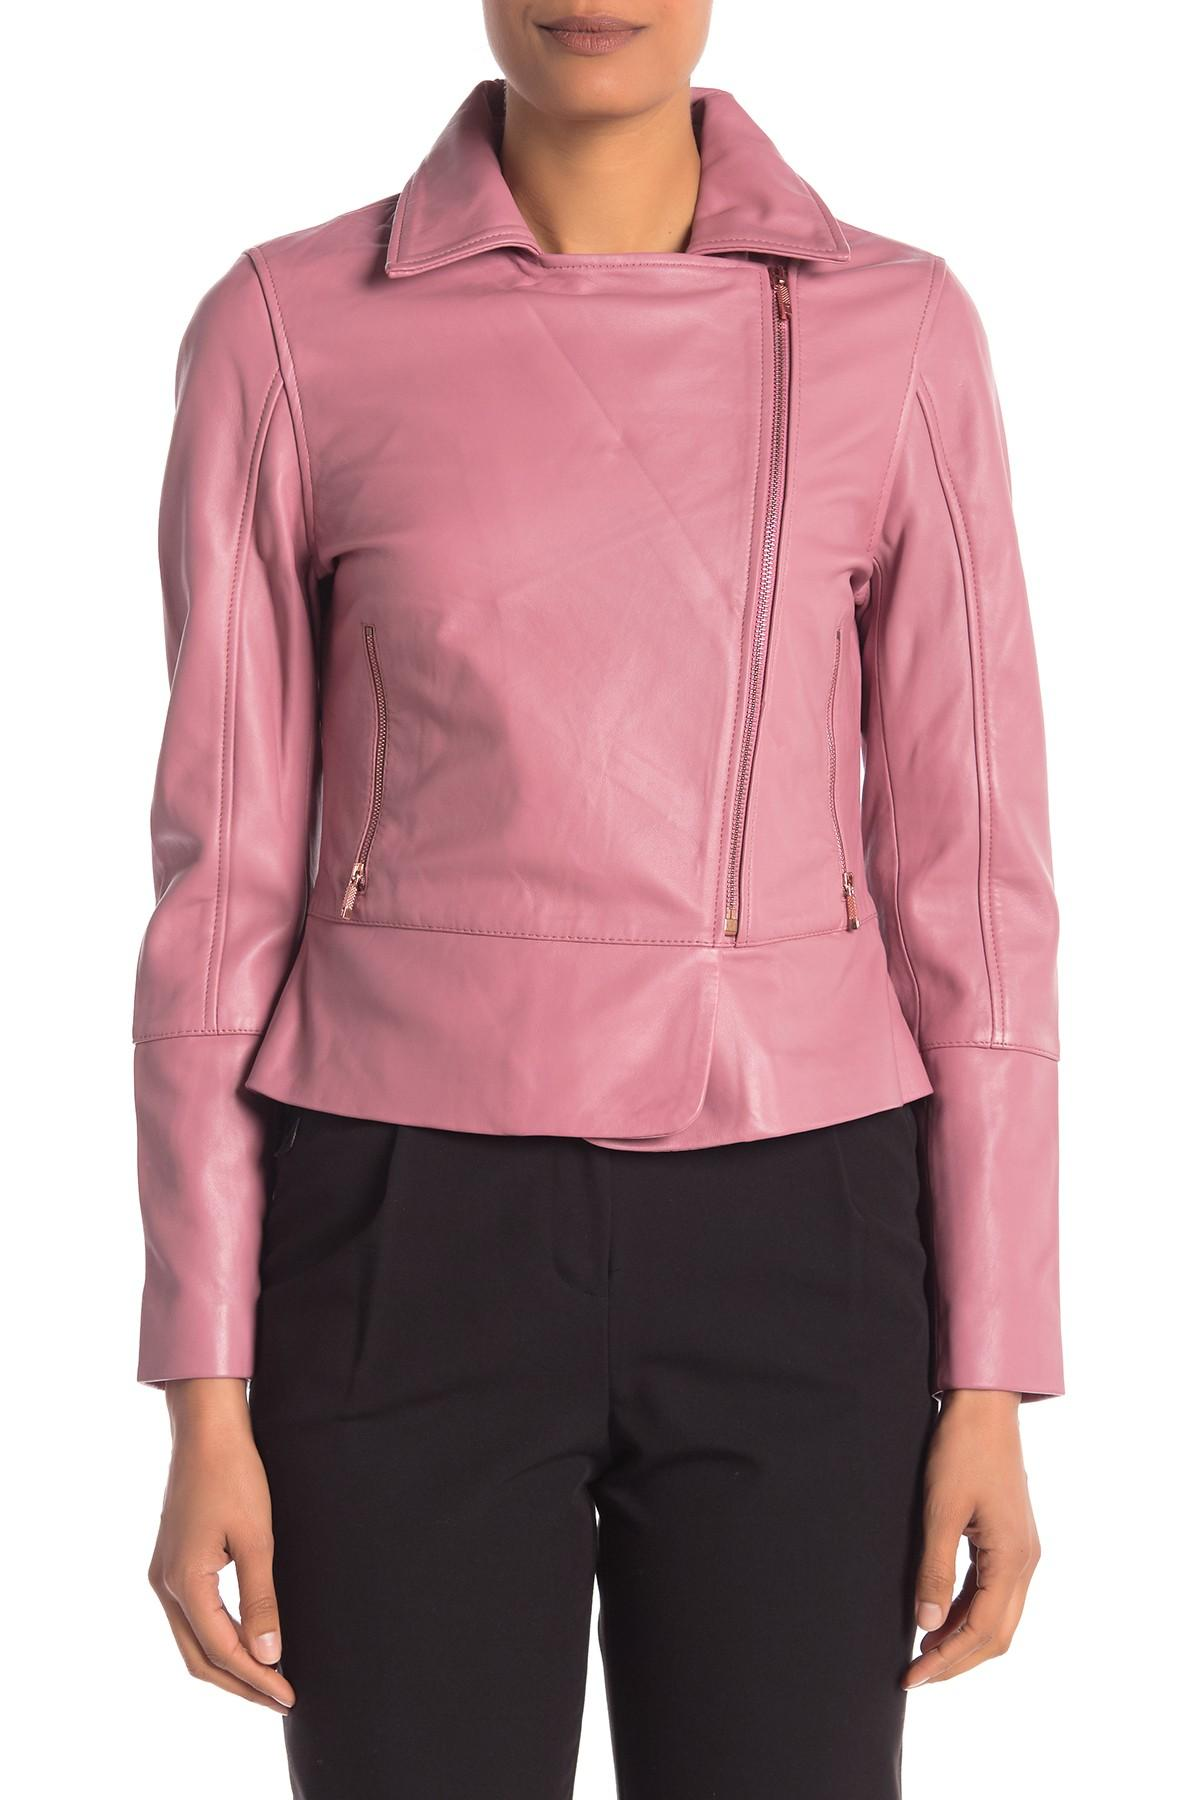 12cfa4bdd Ted Baker - Pink Minimal Leather Biker Jacket - Lyst. View fullscreen